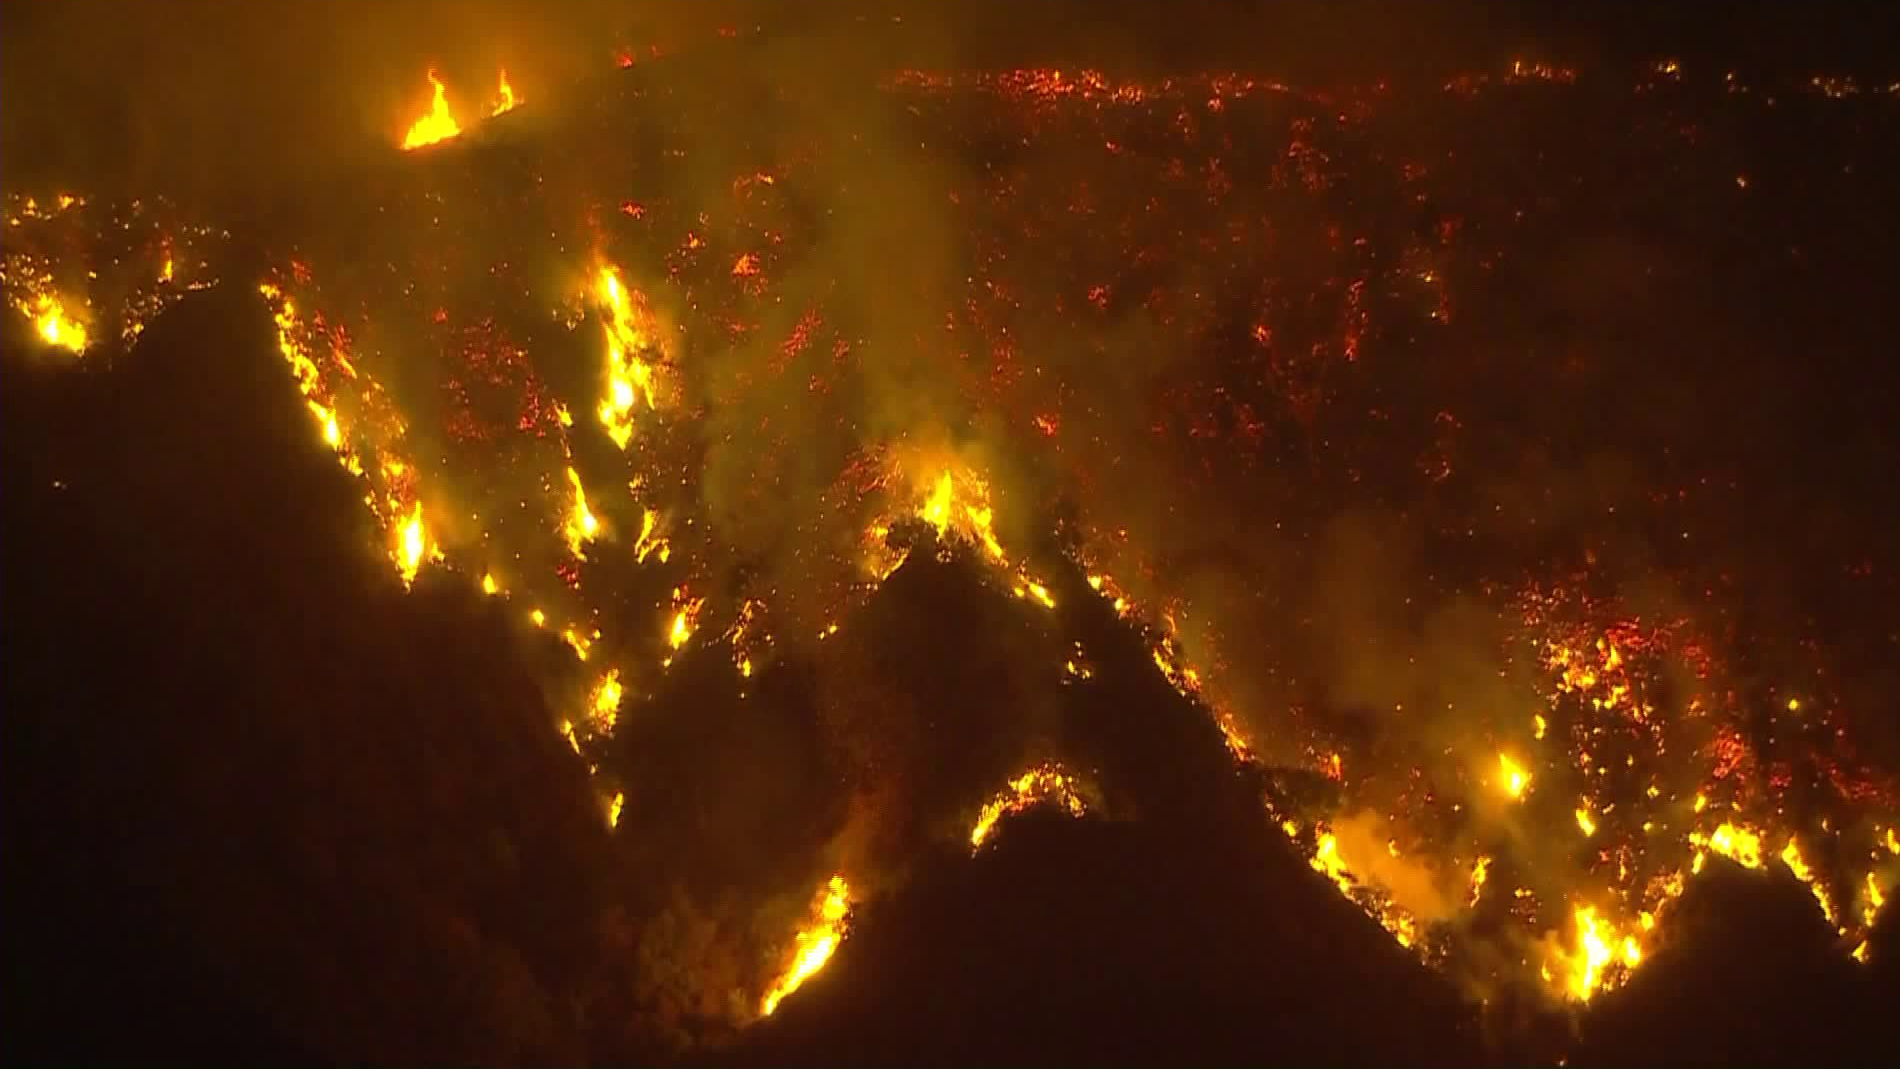 The Bobcat Fire burns intensely in above Monrovia in Angeles National Forest on Sept. 14, 2020. (KTLA)